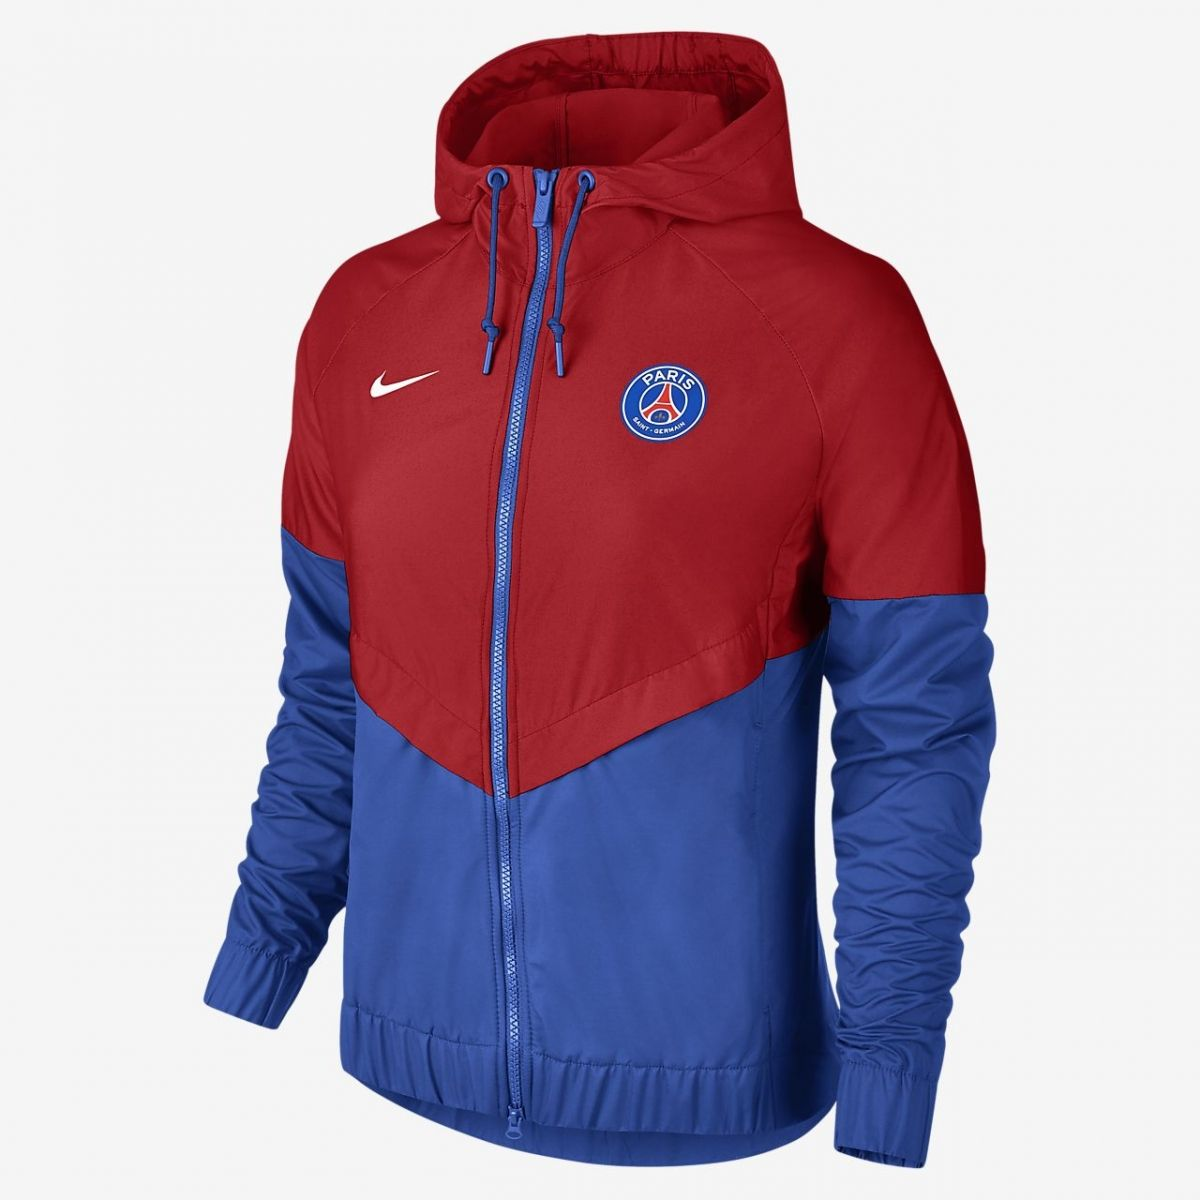 c75e6351fb95 type jackets nike wmns paris saint-germain authentic windrunner jacket